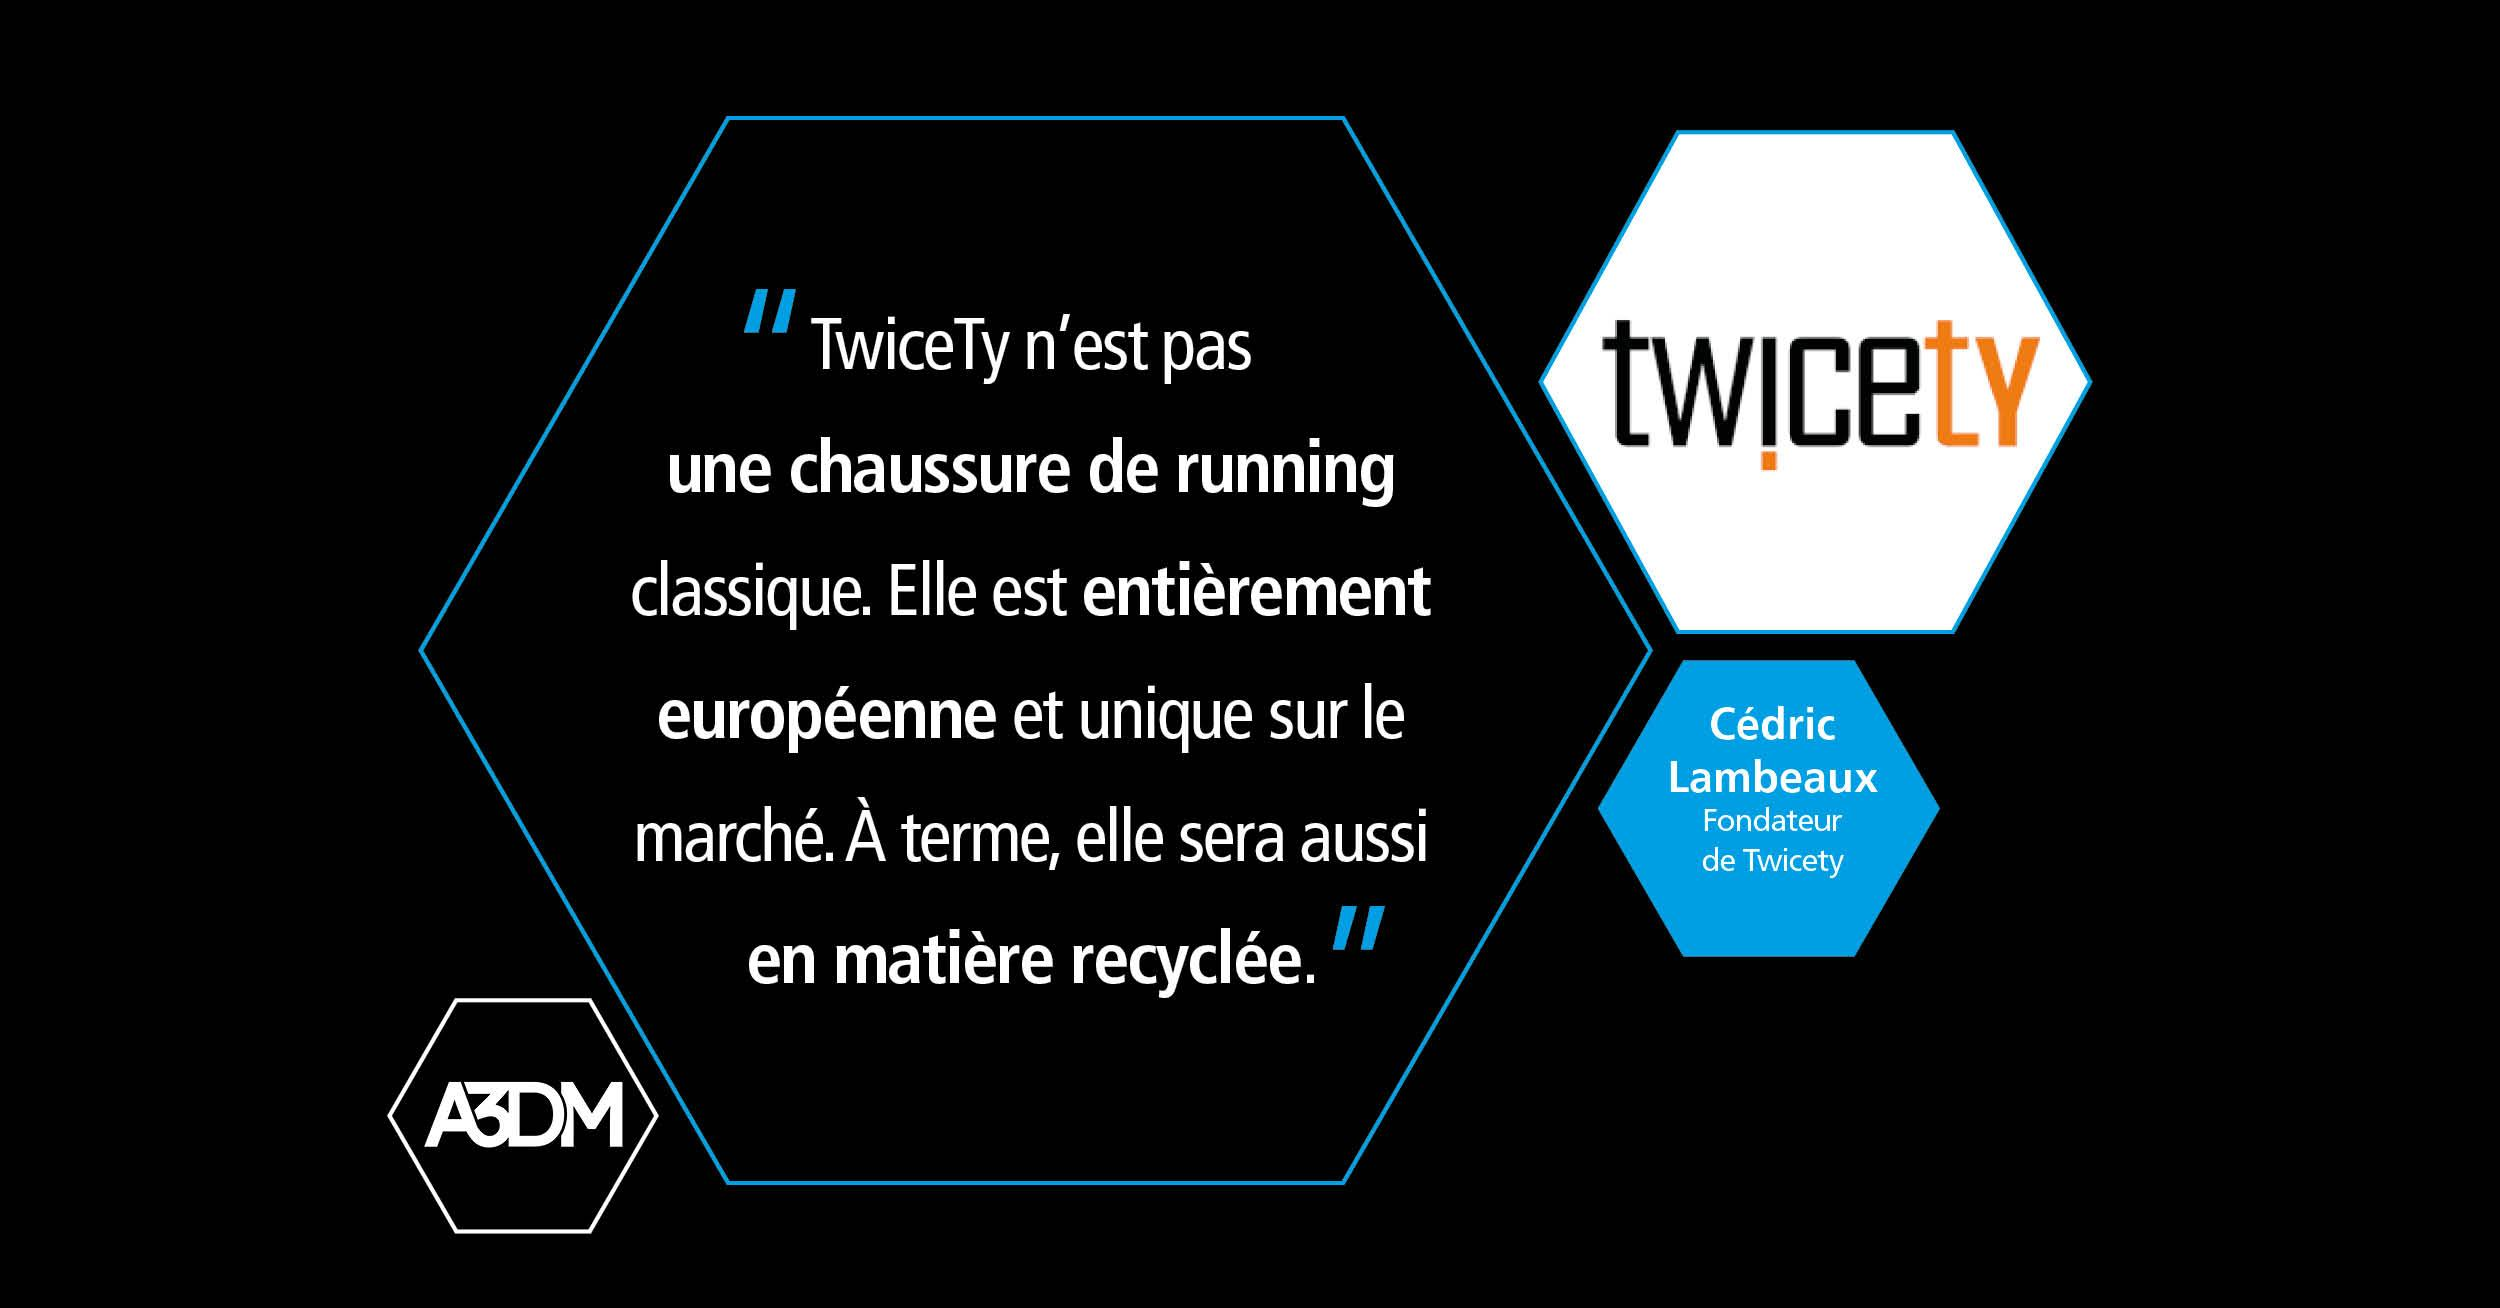 twicety-impression-3D-running-chaussures